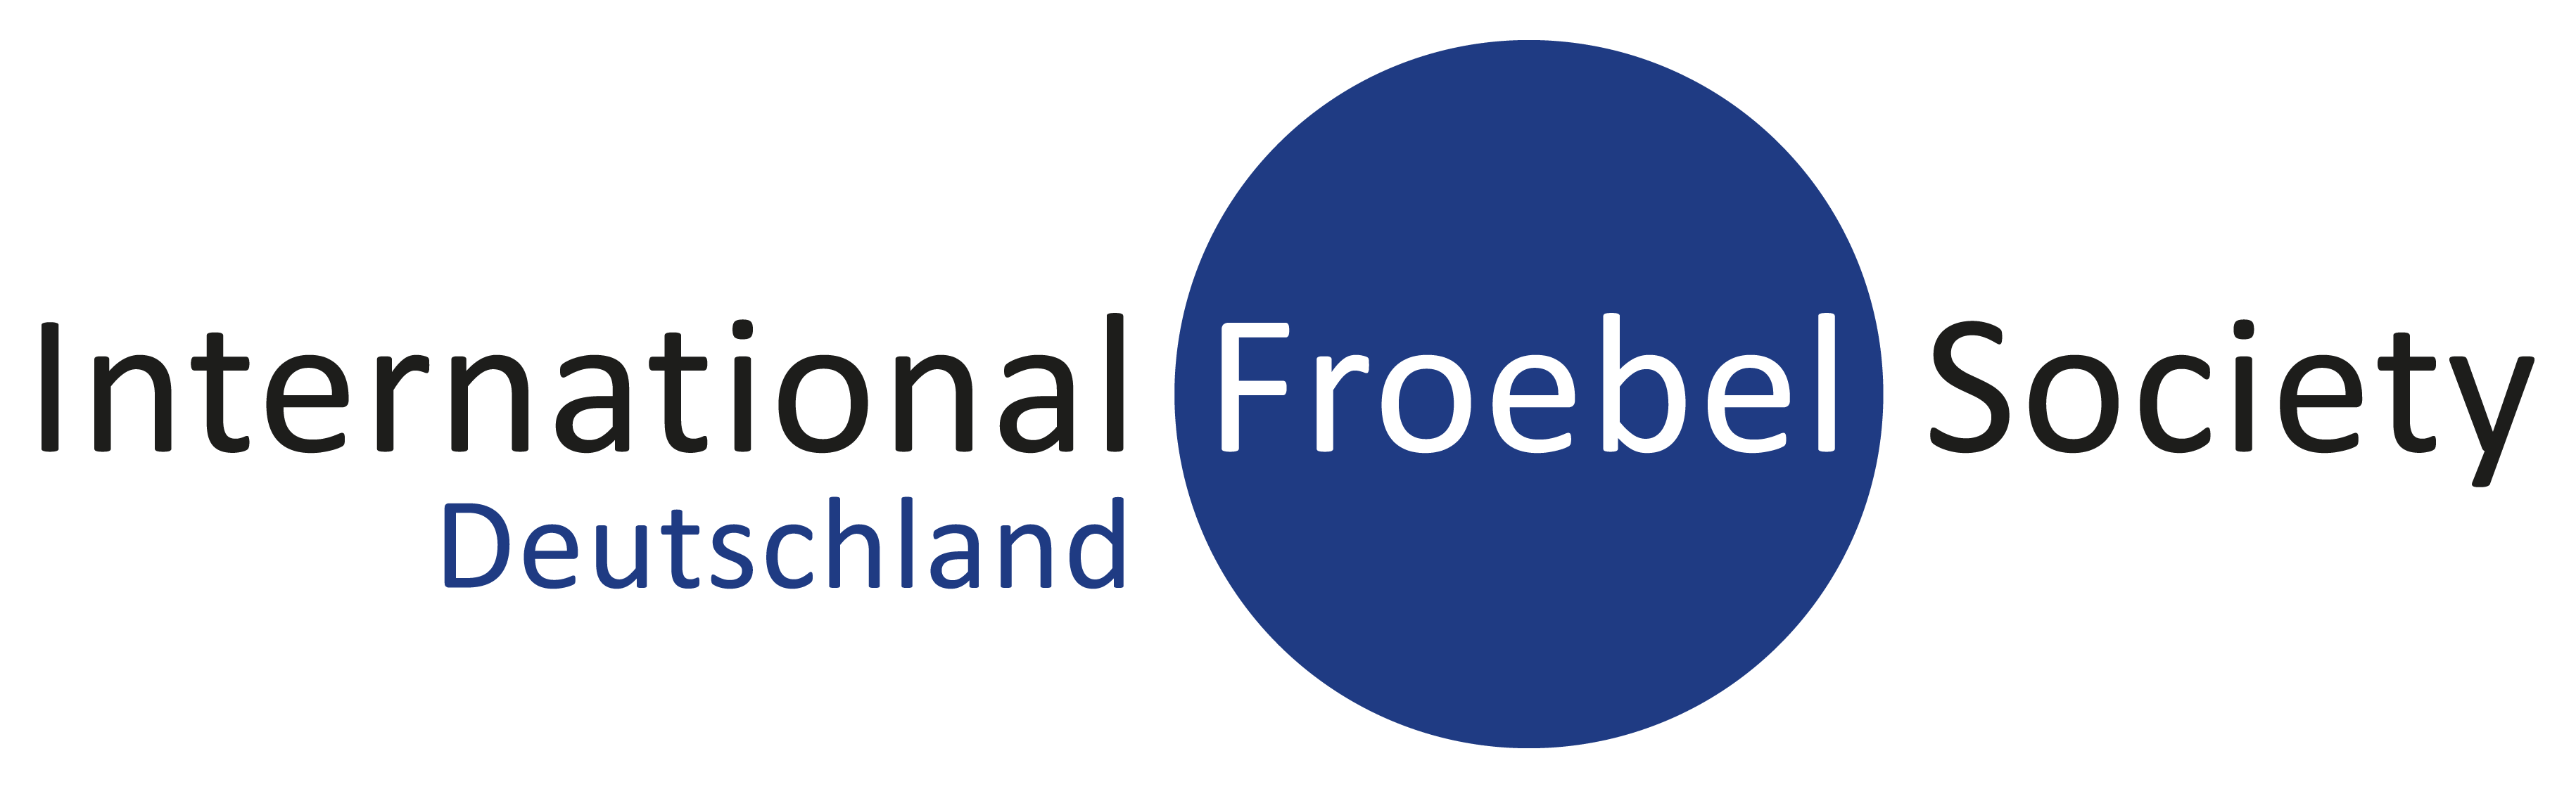 International Froebel Society – Deutschland e.V.